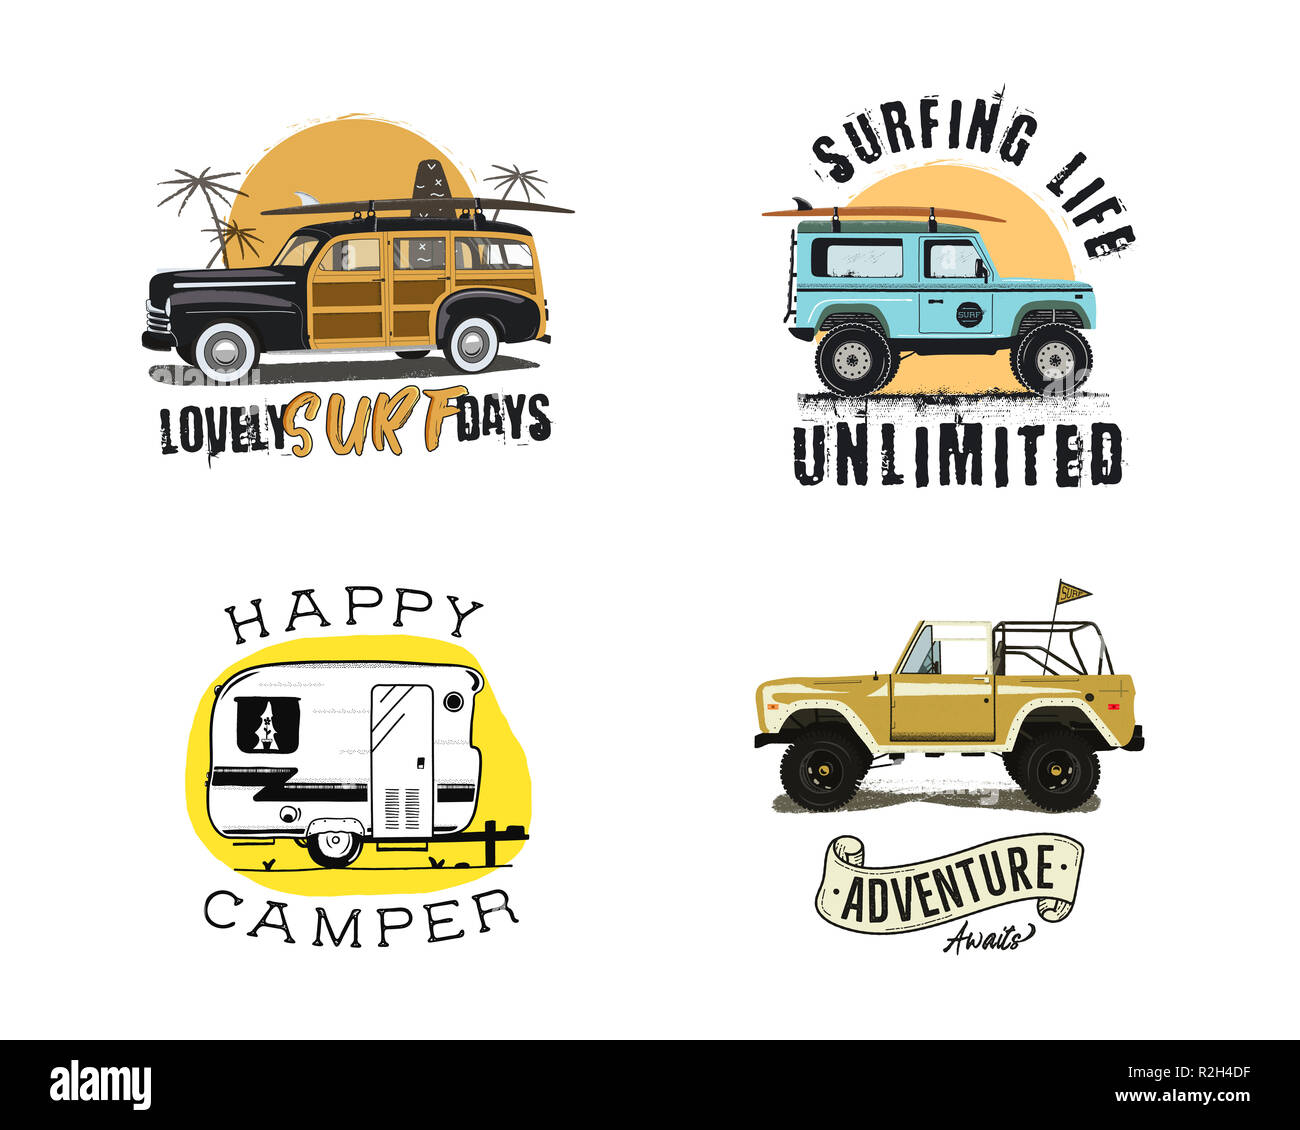 Vintage surfing graphics and emblems set for web design or print. Surfer logo templates. Surf Badges. Summer fun. Surfboard elements. Outdoors activity - boarding on waves. hipster insignias - Stock Image